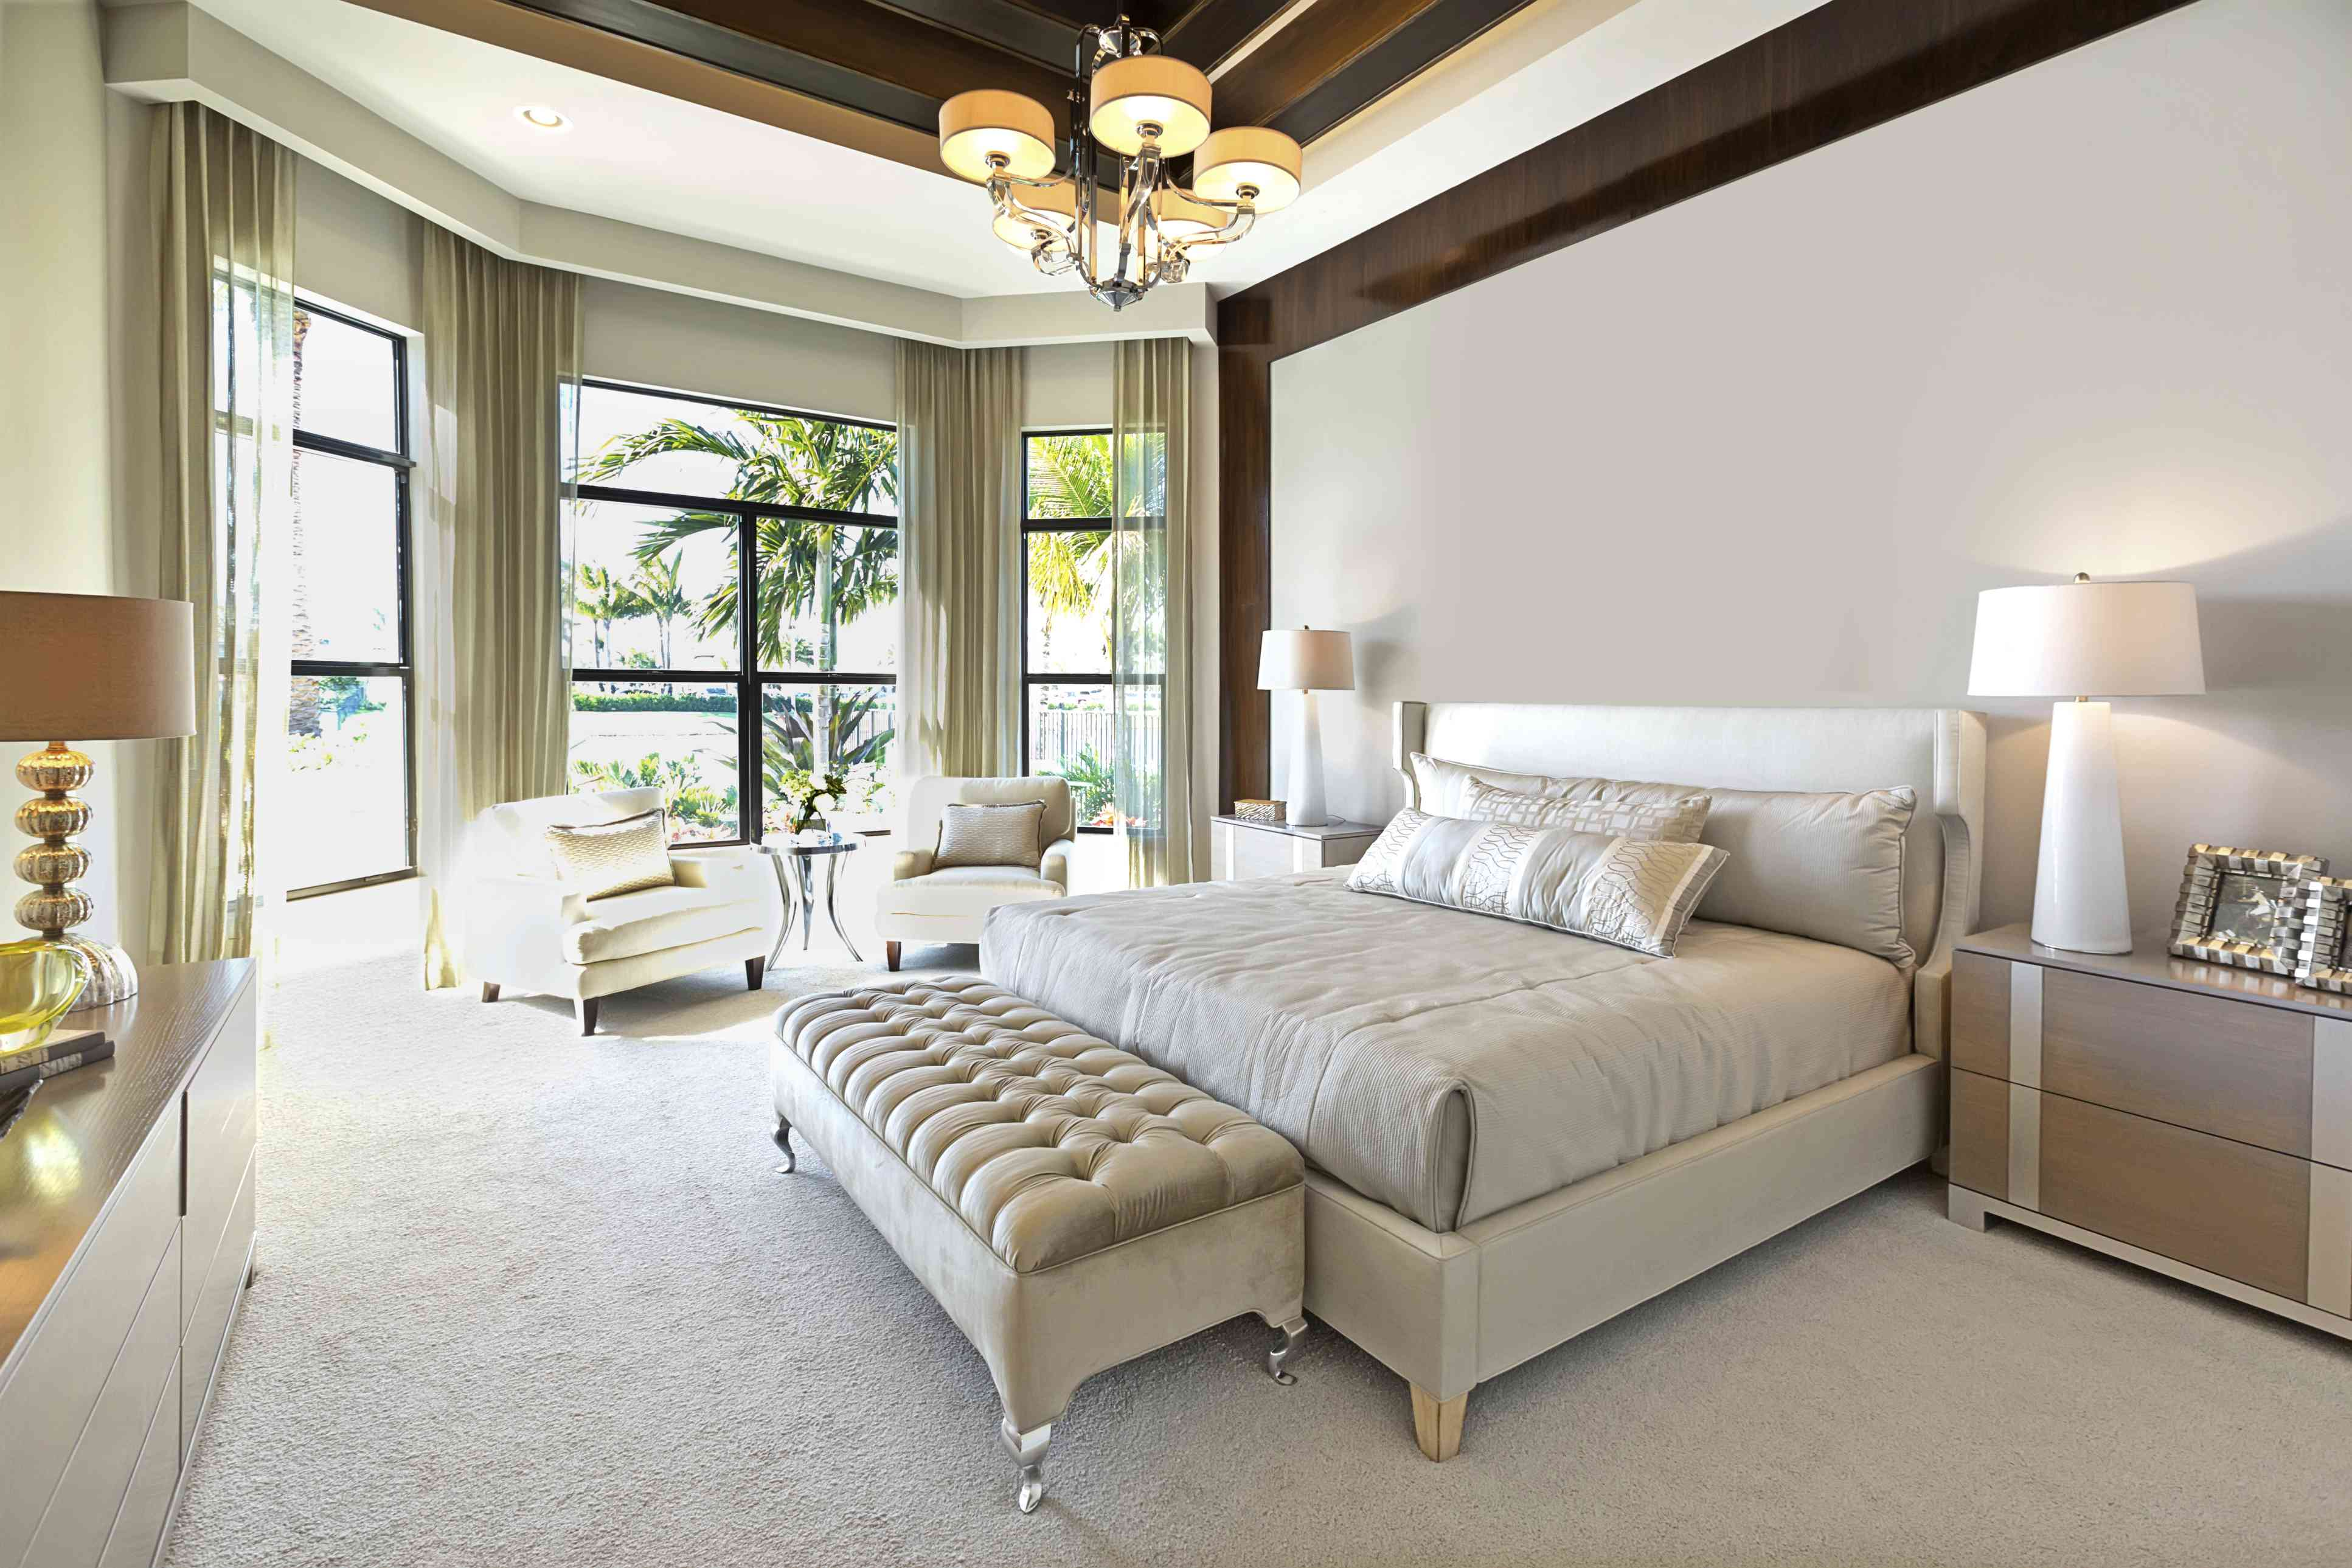 Master bedroom in neutral colors featuring white carpet